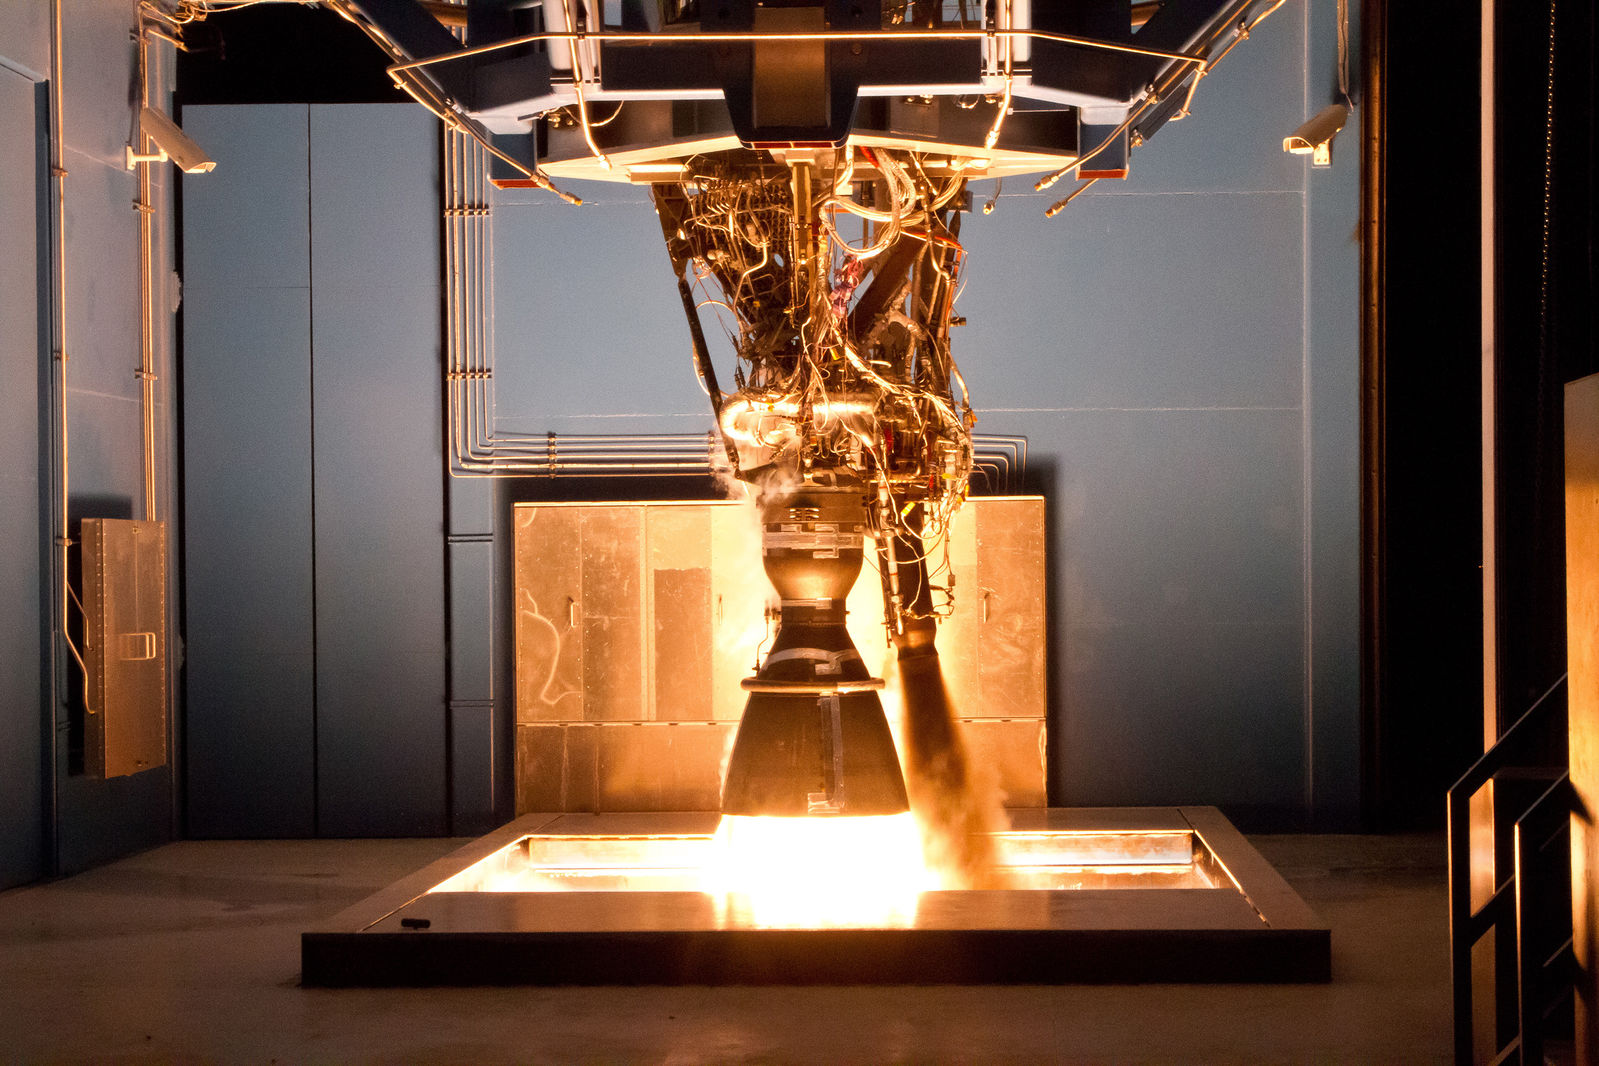 Spacex Suffers Failure During Merlin 1d Engine Testing